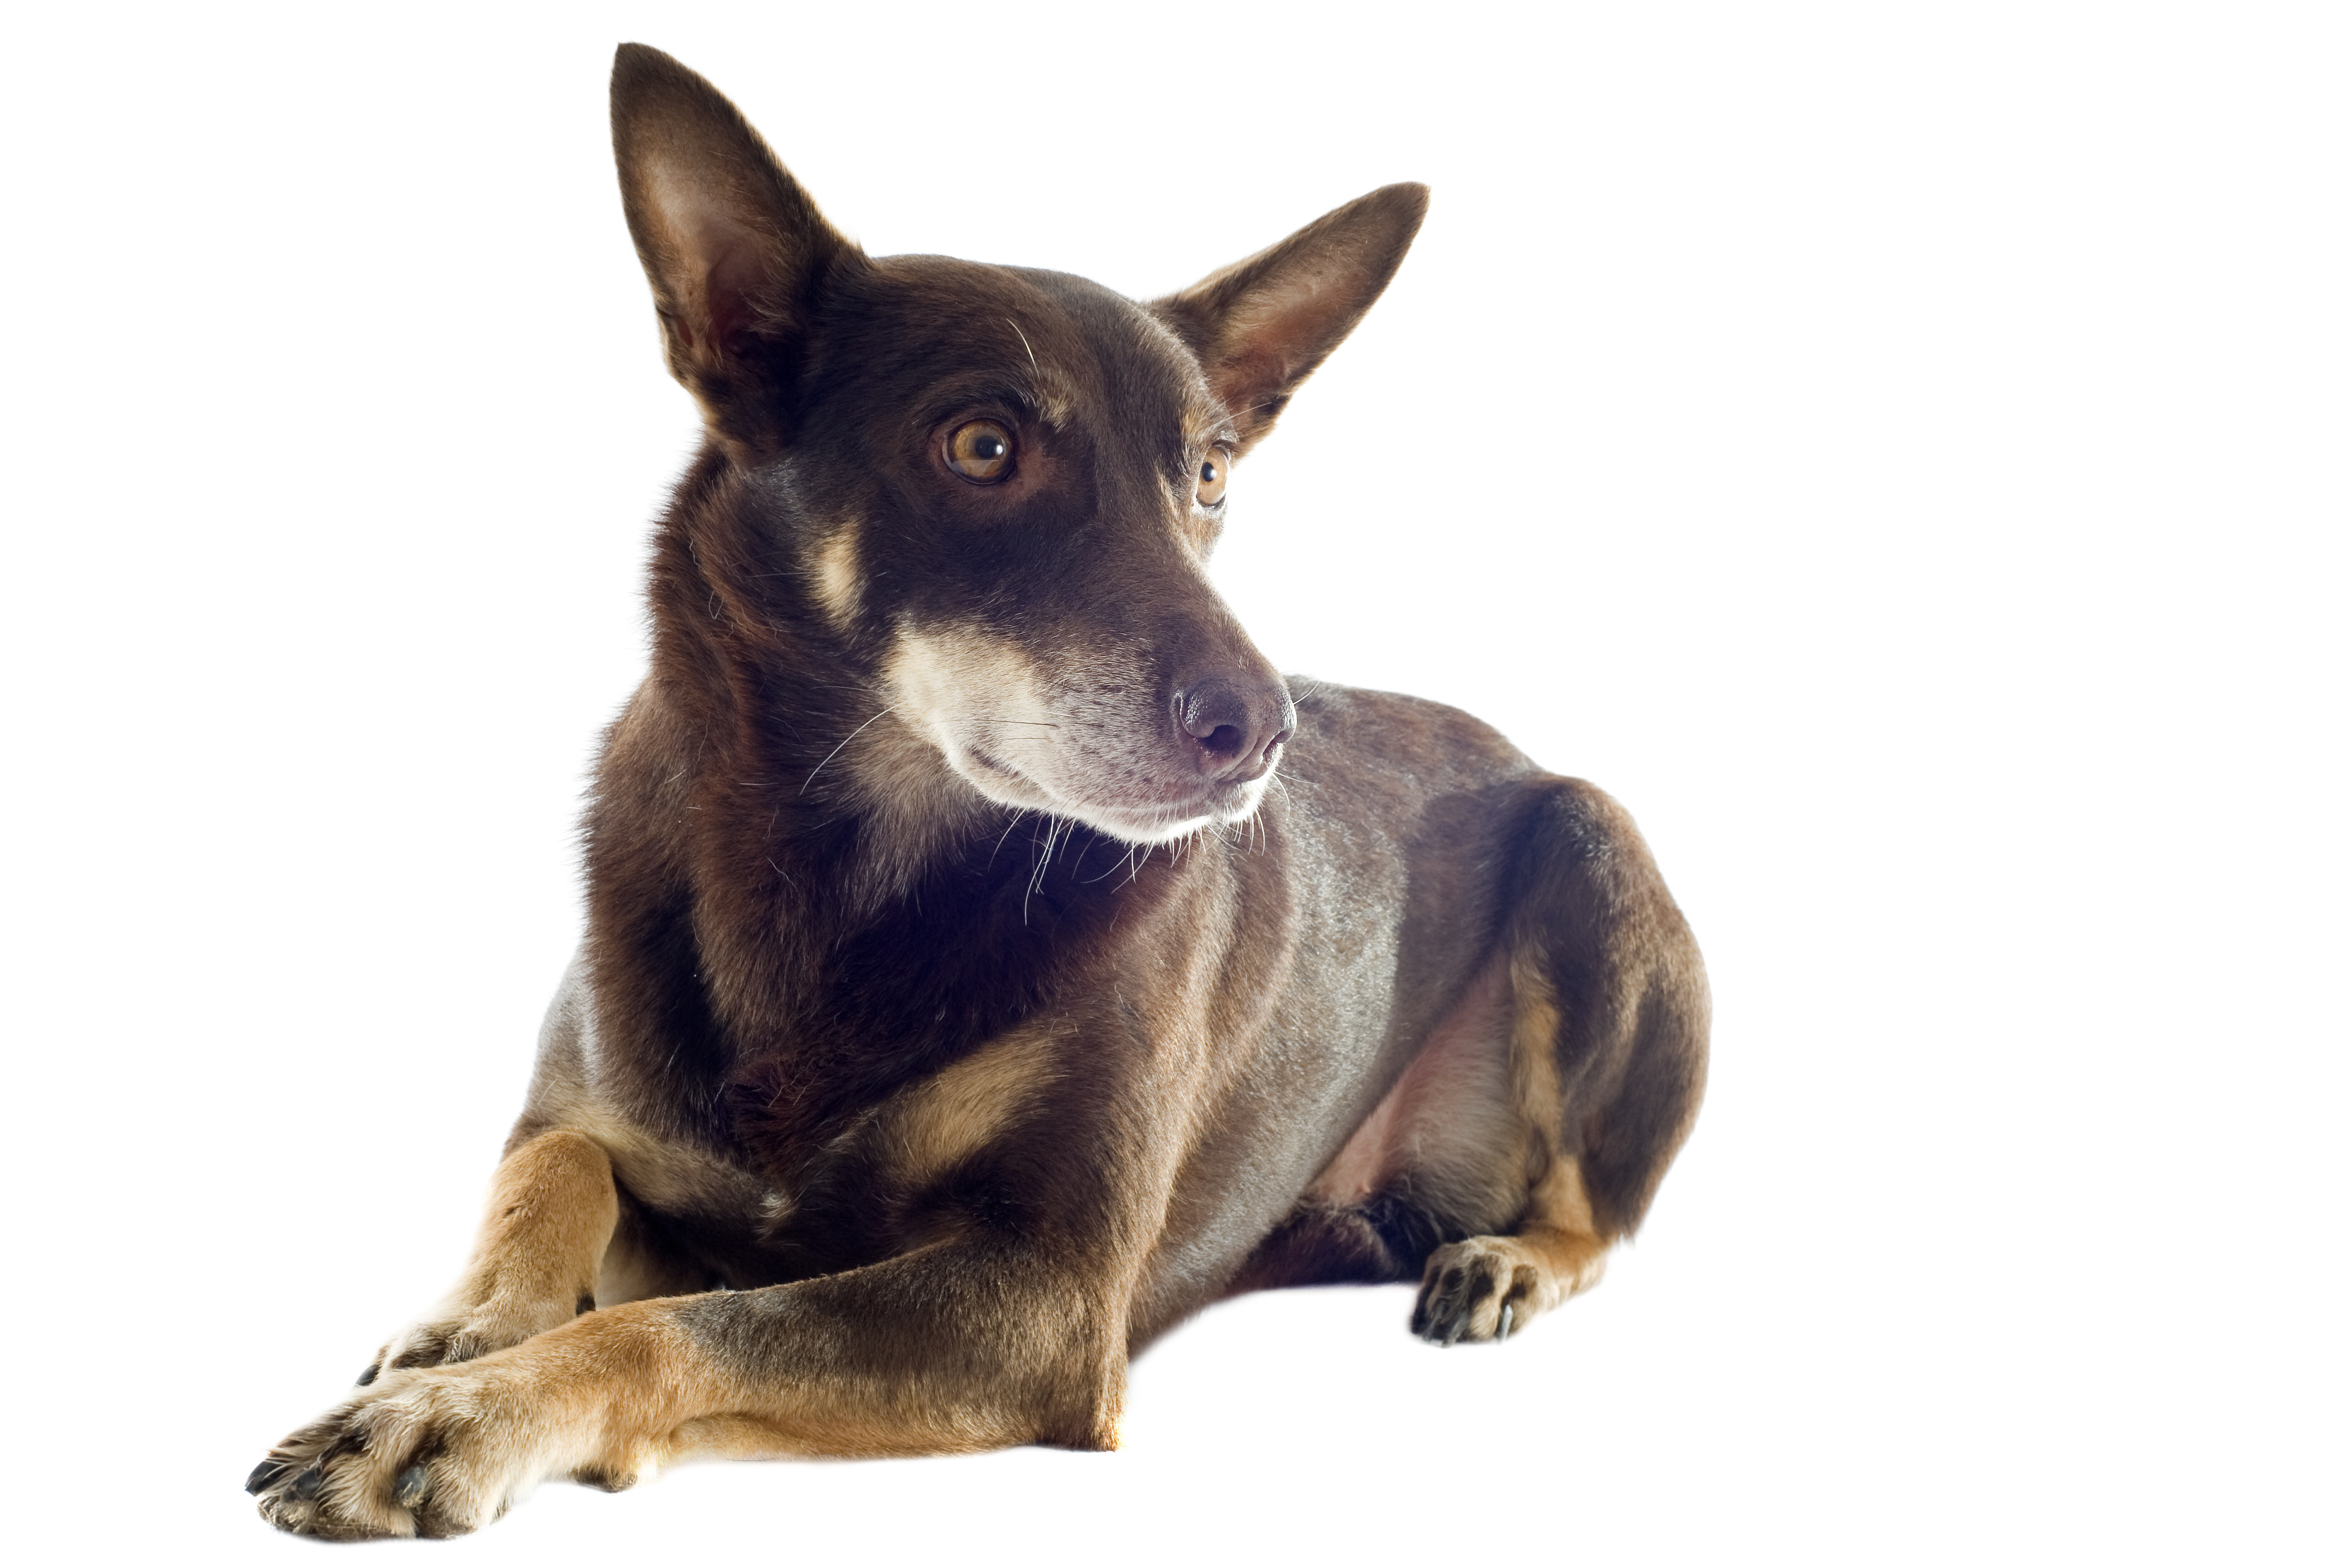 Kelpie dog lying down in front of white background